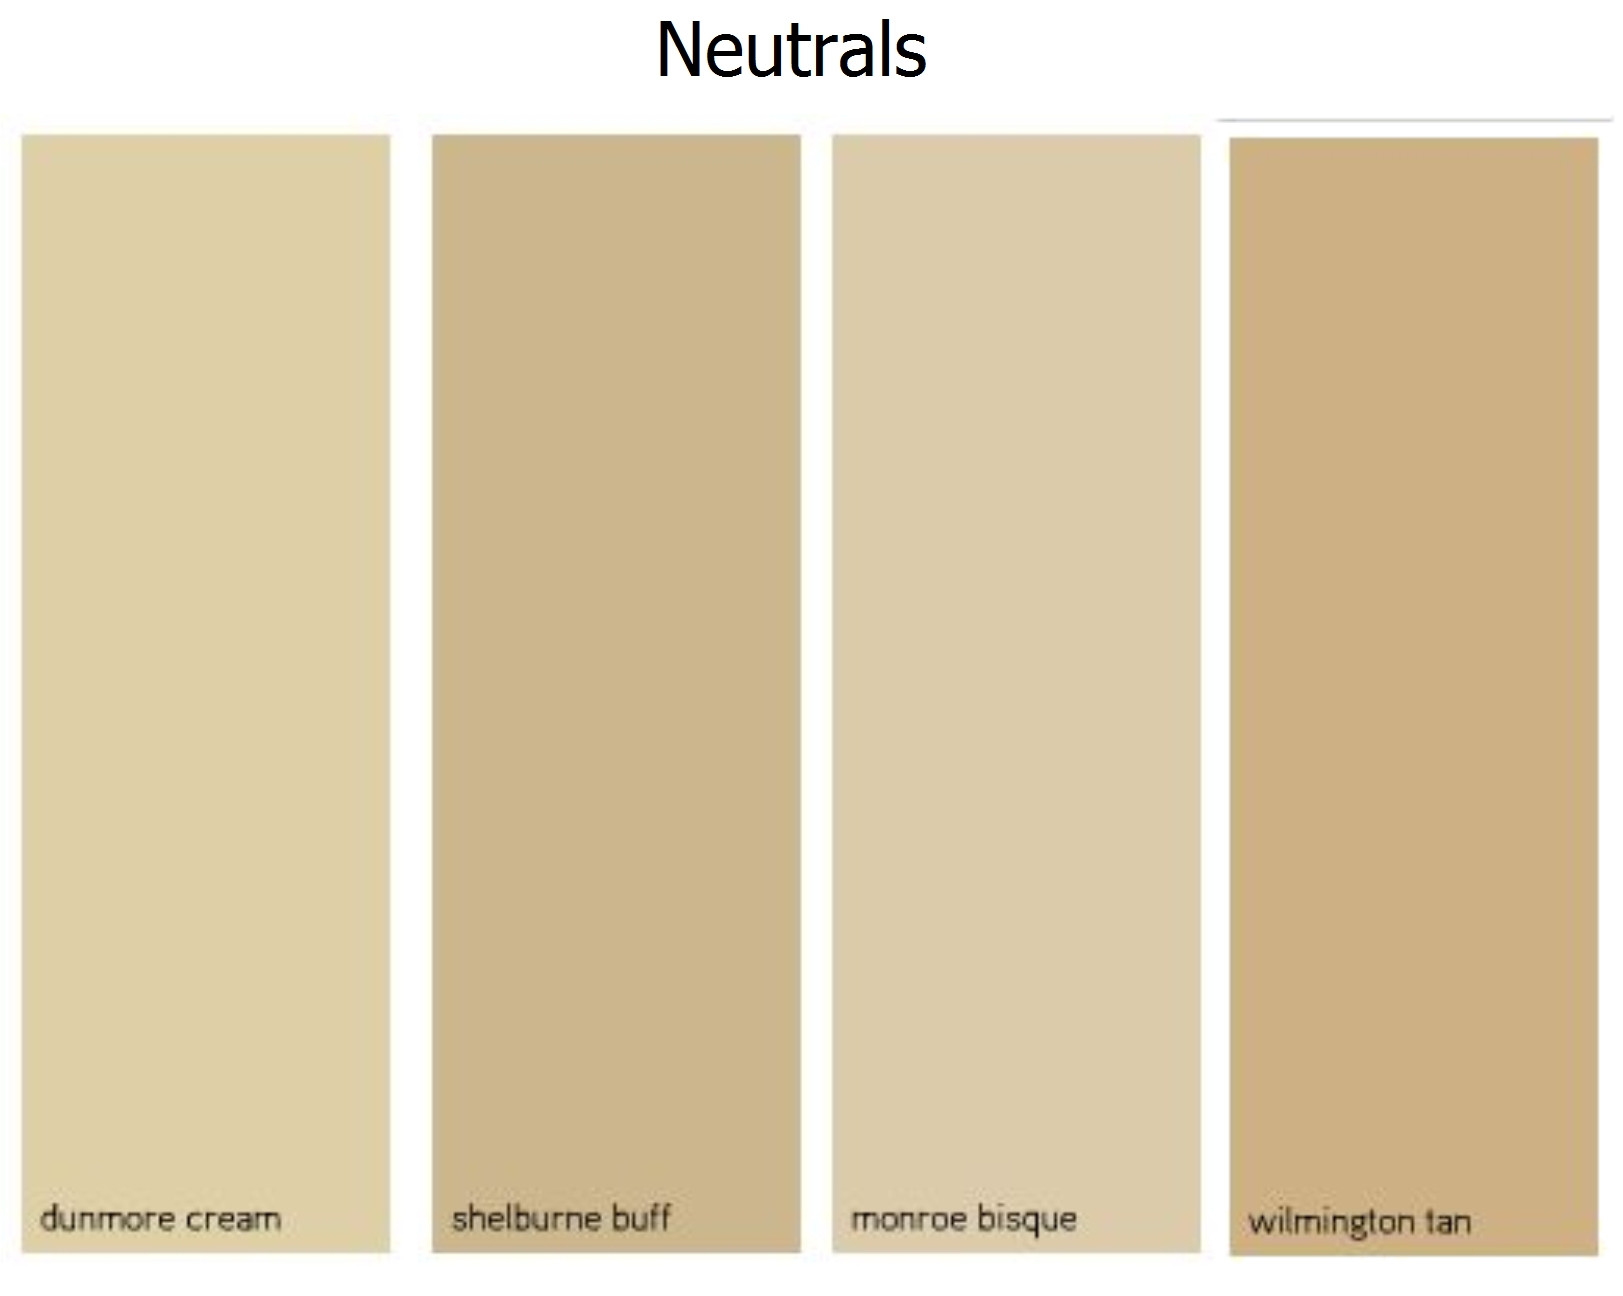 Best ideas about Tan Paint Colors . Save or Pin Neutral Paint Colors Living Room Living room glubdubs Now.